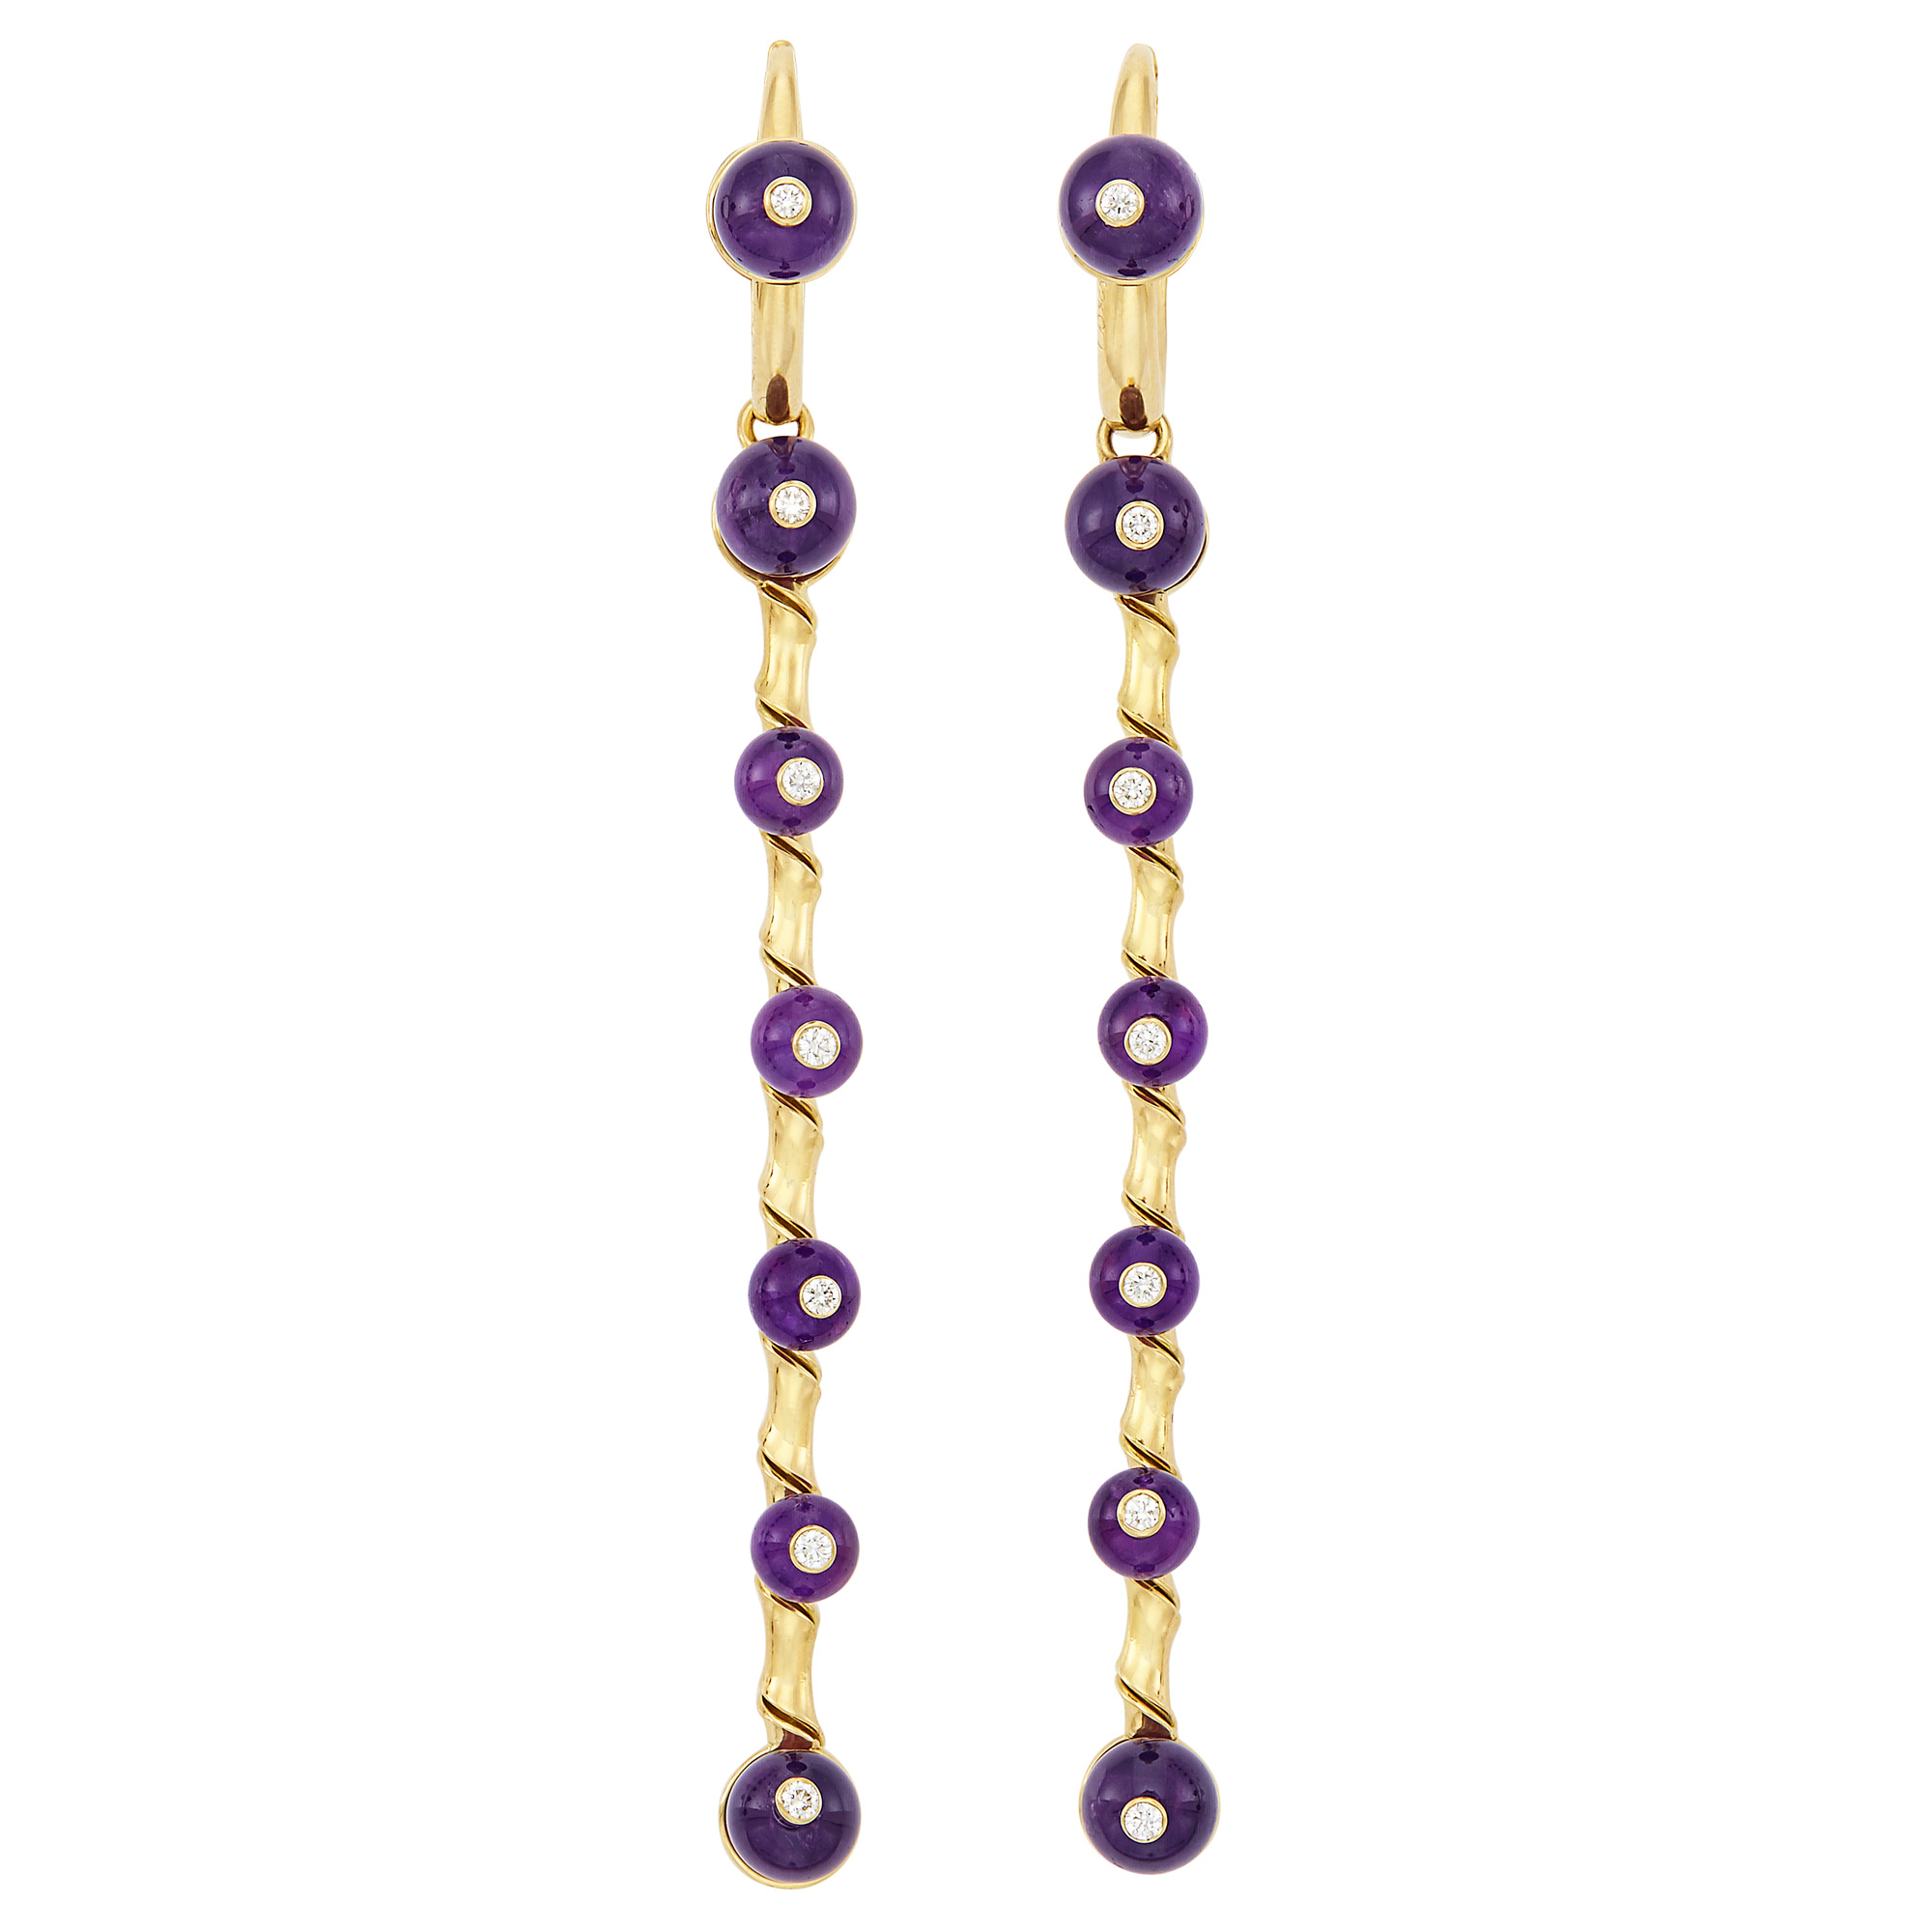 Lot image - Pair of Gold, Amethyst Bead and Diamond Pendant-Earrings, Aletto Brothers